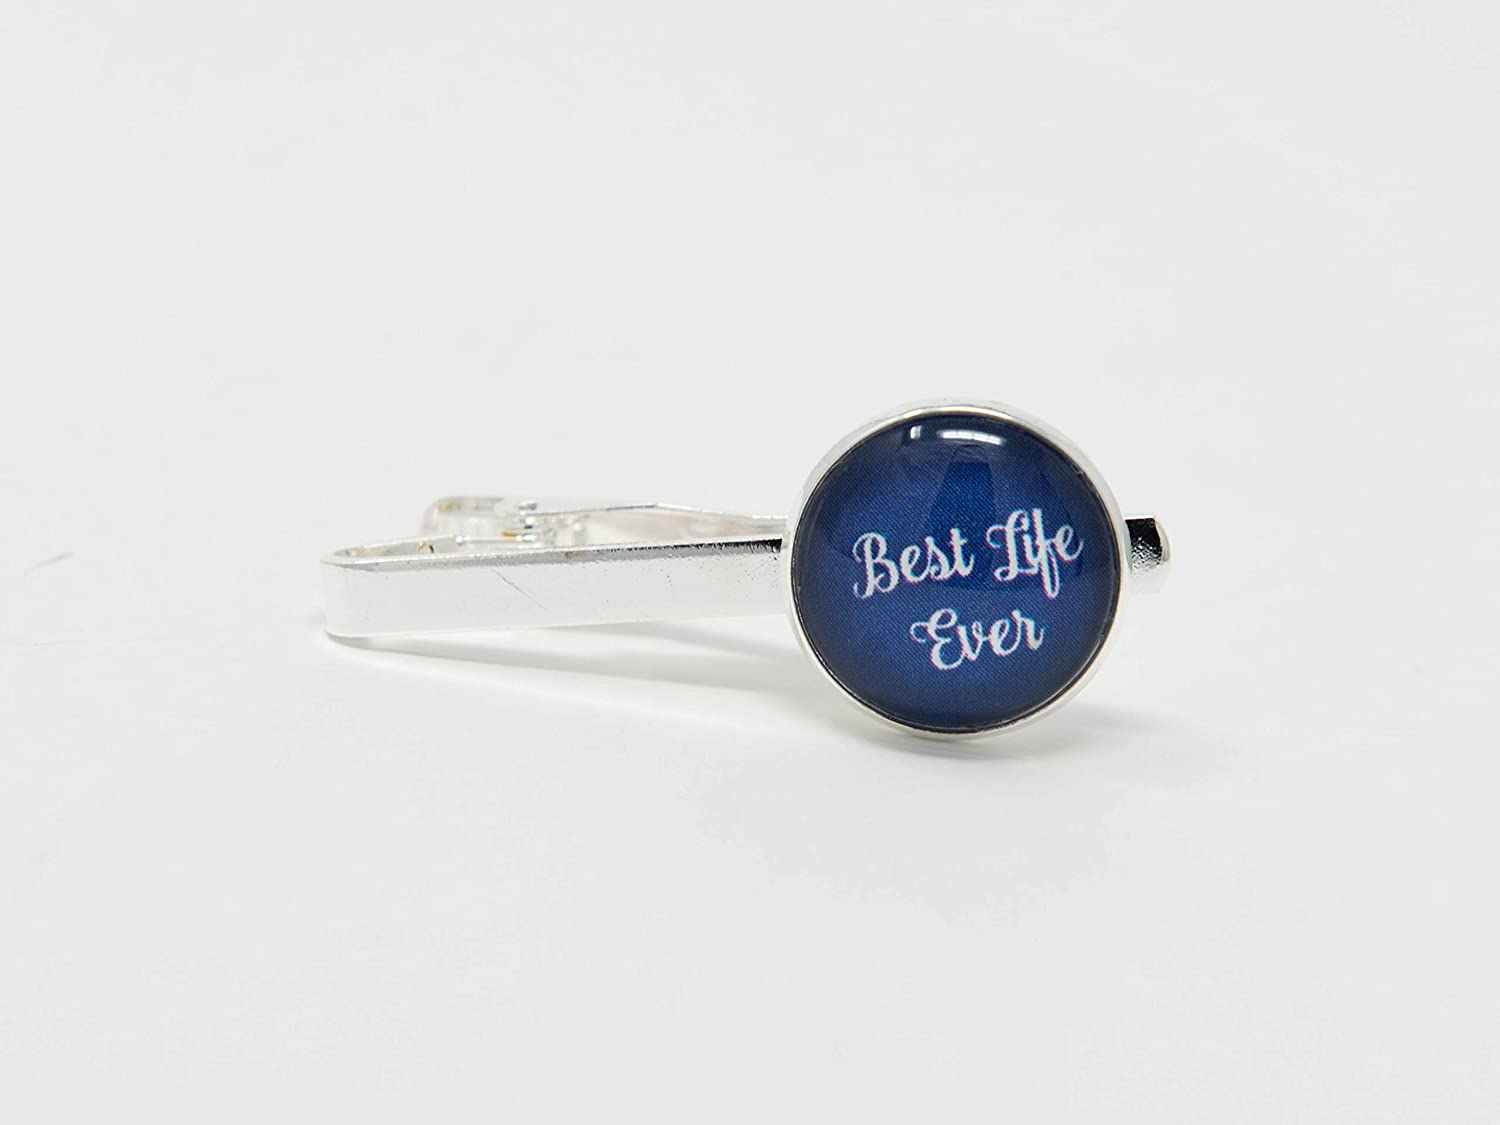 BEST LIFE EVER - Silver Tone Tie Bar Tie Clip for Men, Menswear, Men's Accessories, JW Gifts in blue Men's Accessories